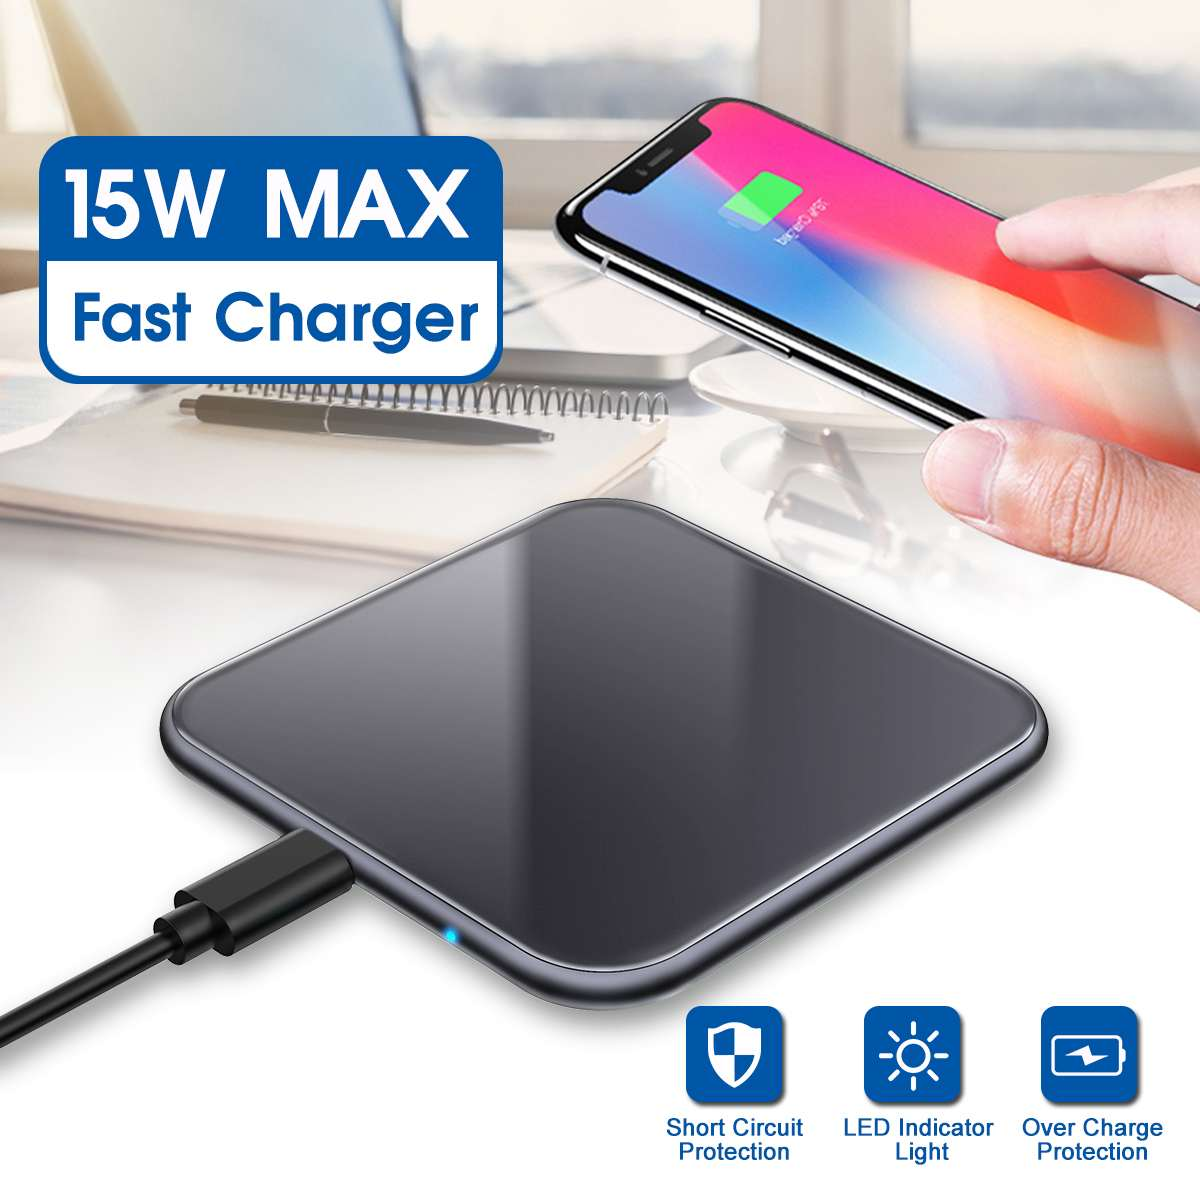 LED Indicator Light Charger Portable Mobile Phone Charger Wireless Tablet Charger For Wireless Charging Mobile Phone Laptop